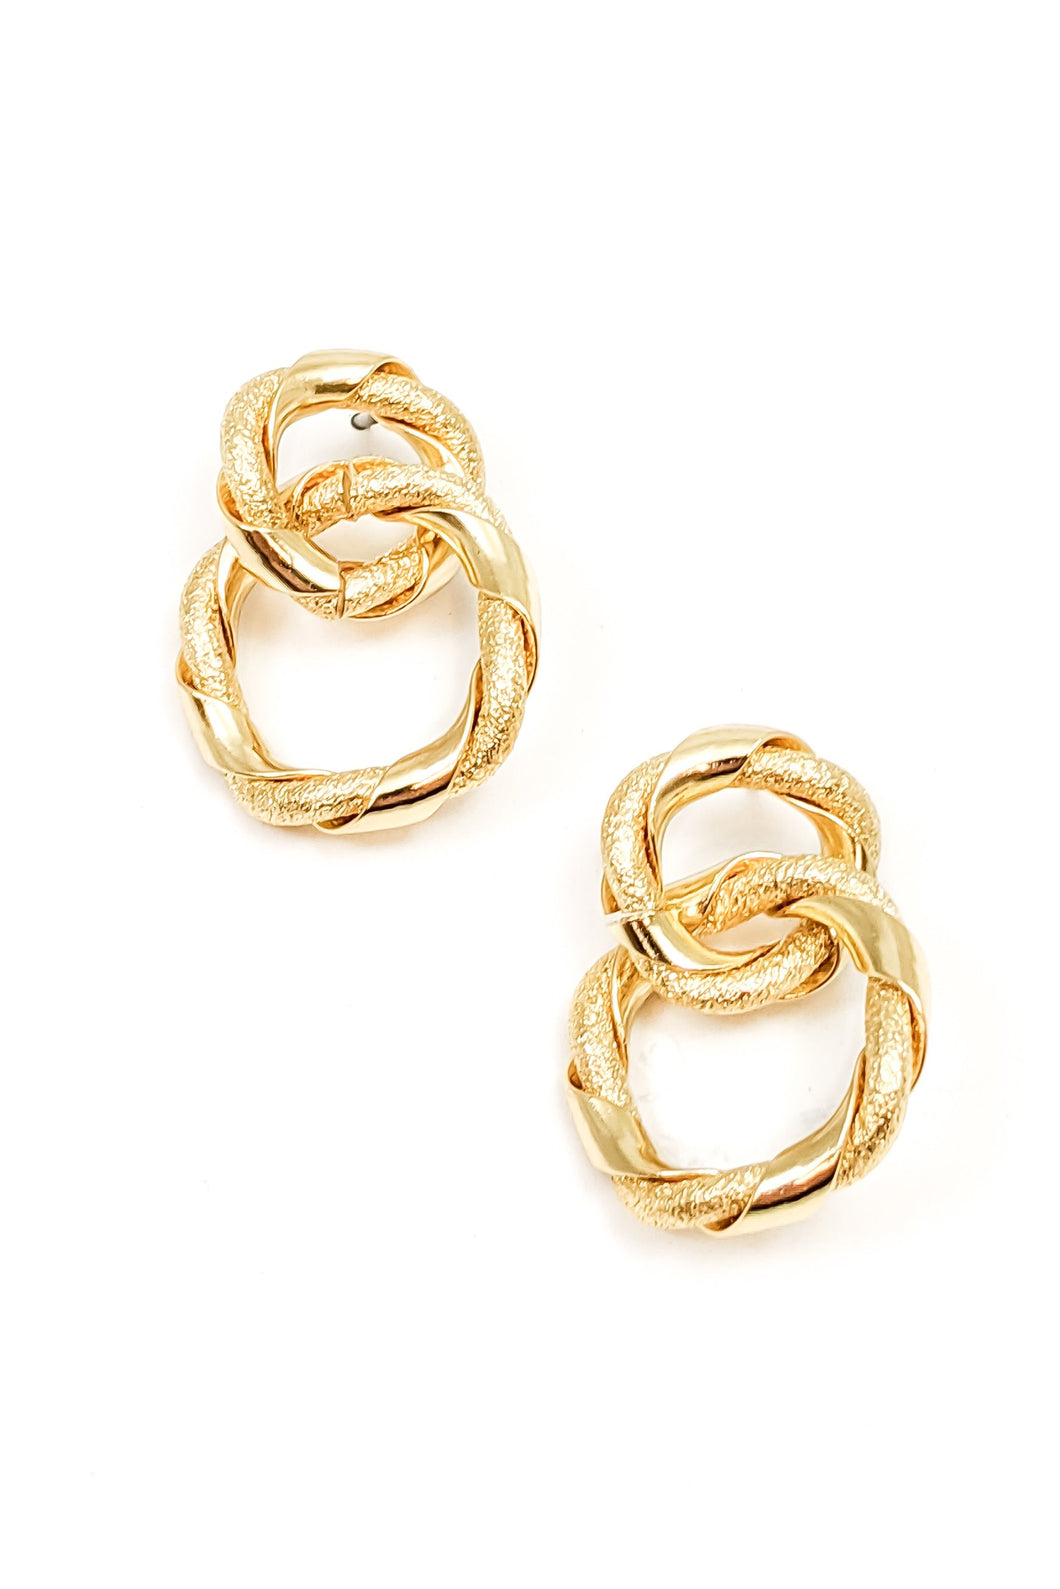 Lexington Gold Knotted Earrings